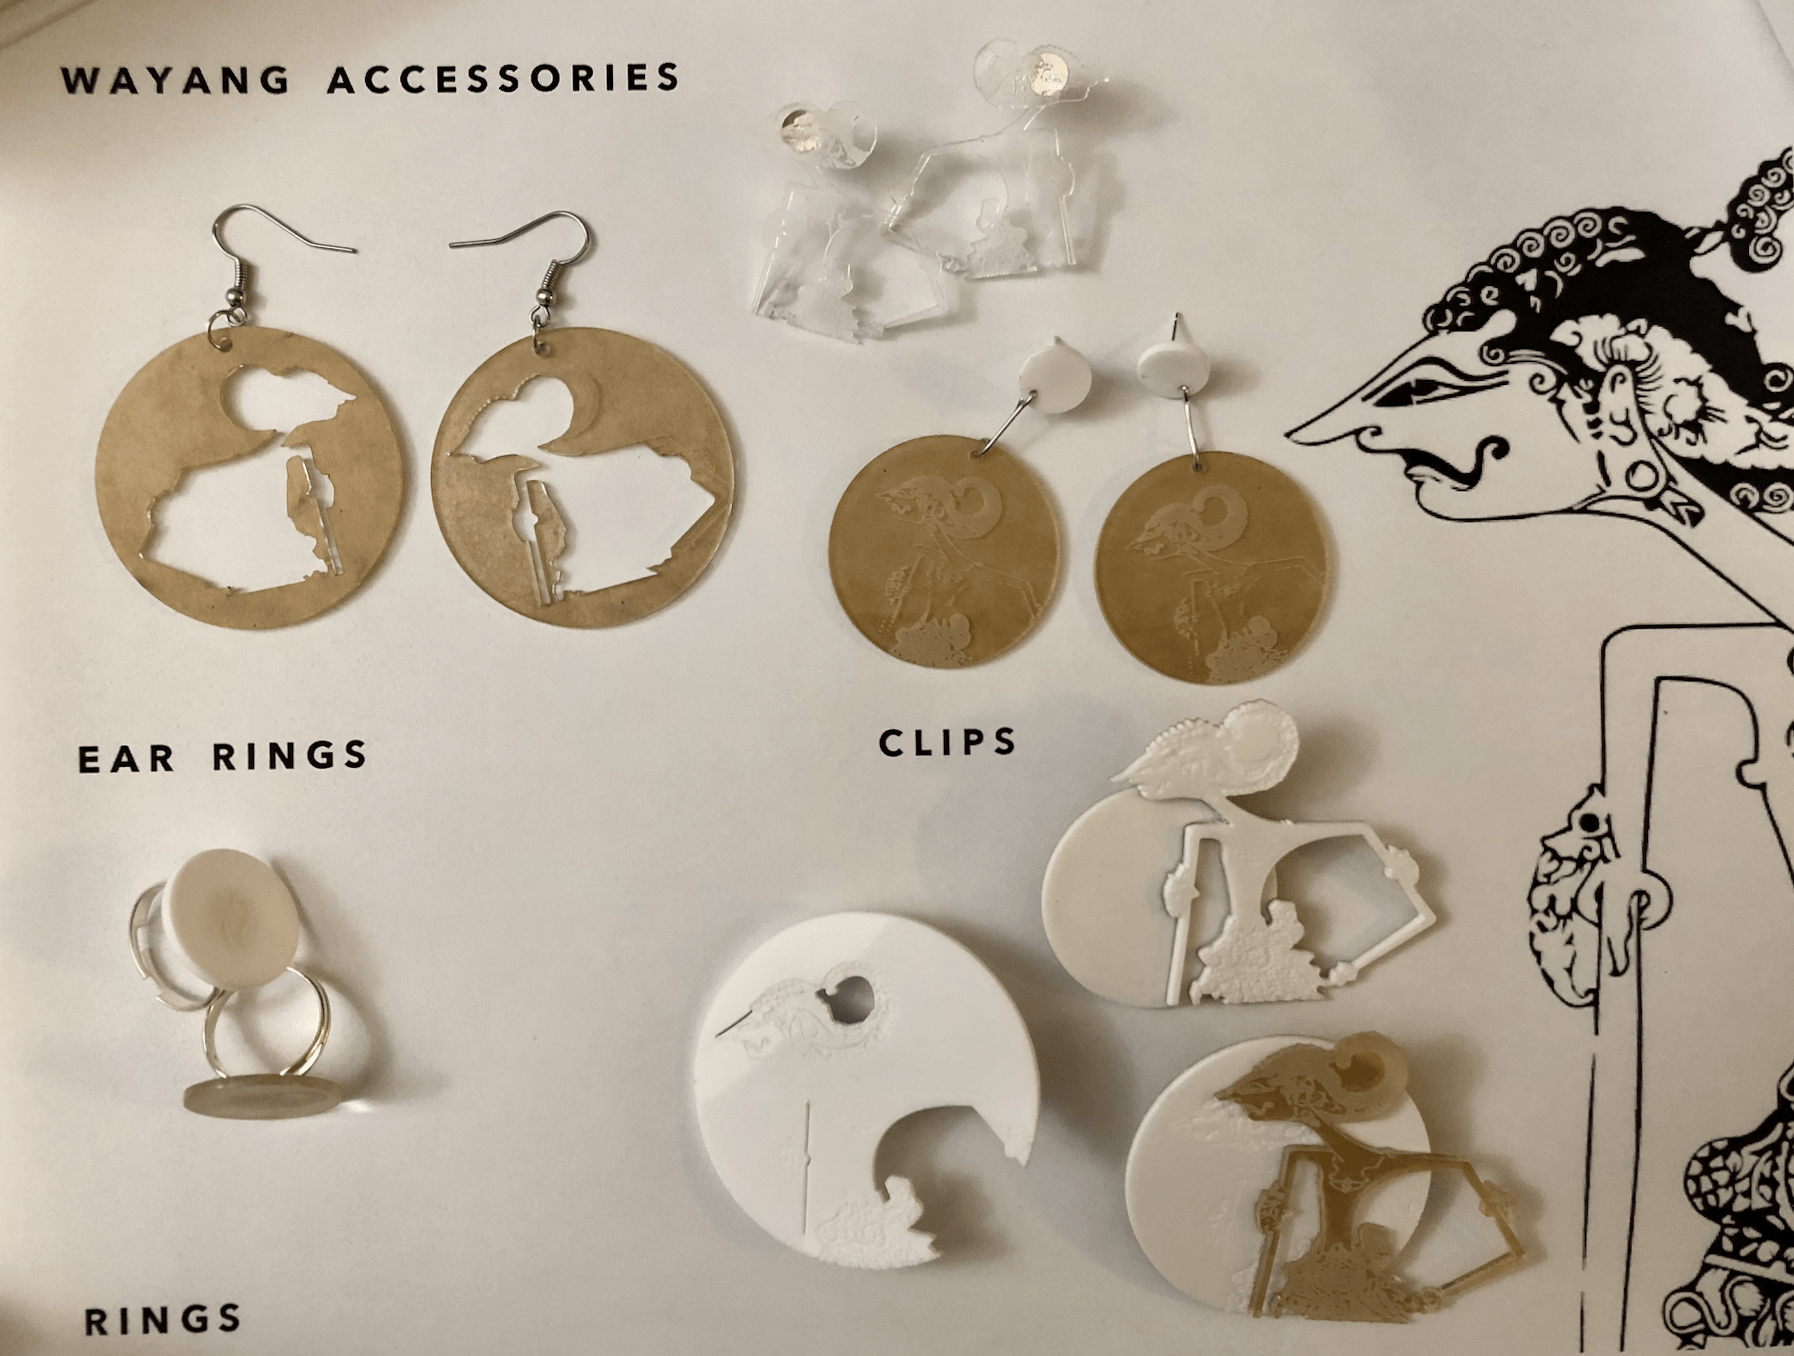 [ digital craft ] mid-term jewelry – wayang accessories